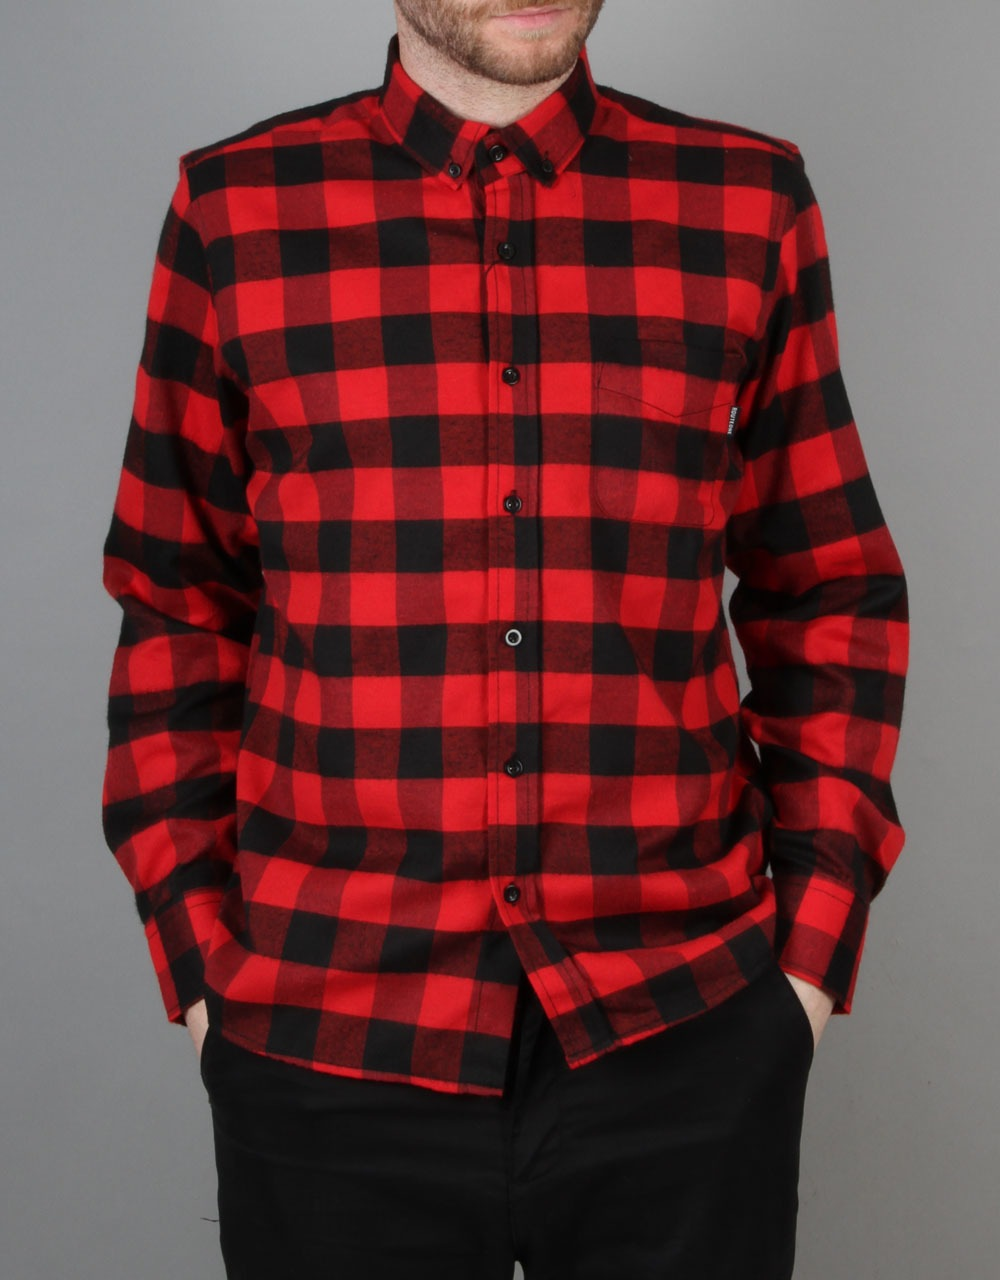 Route One Buffalo Check Flannel Shirt Red Black Long